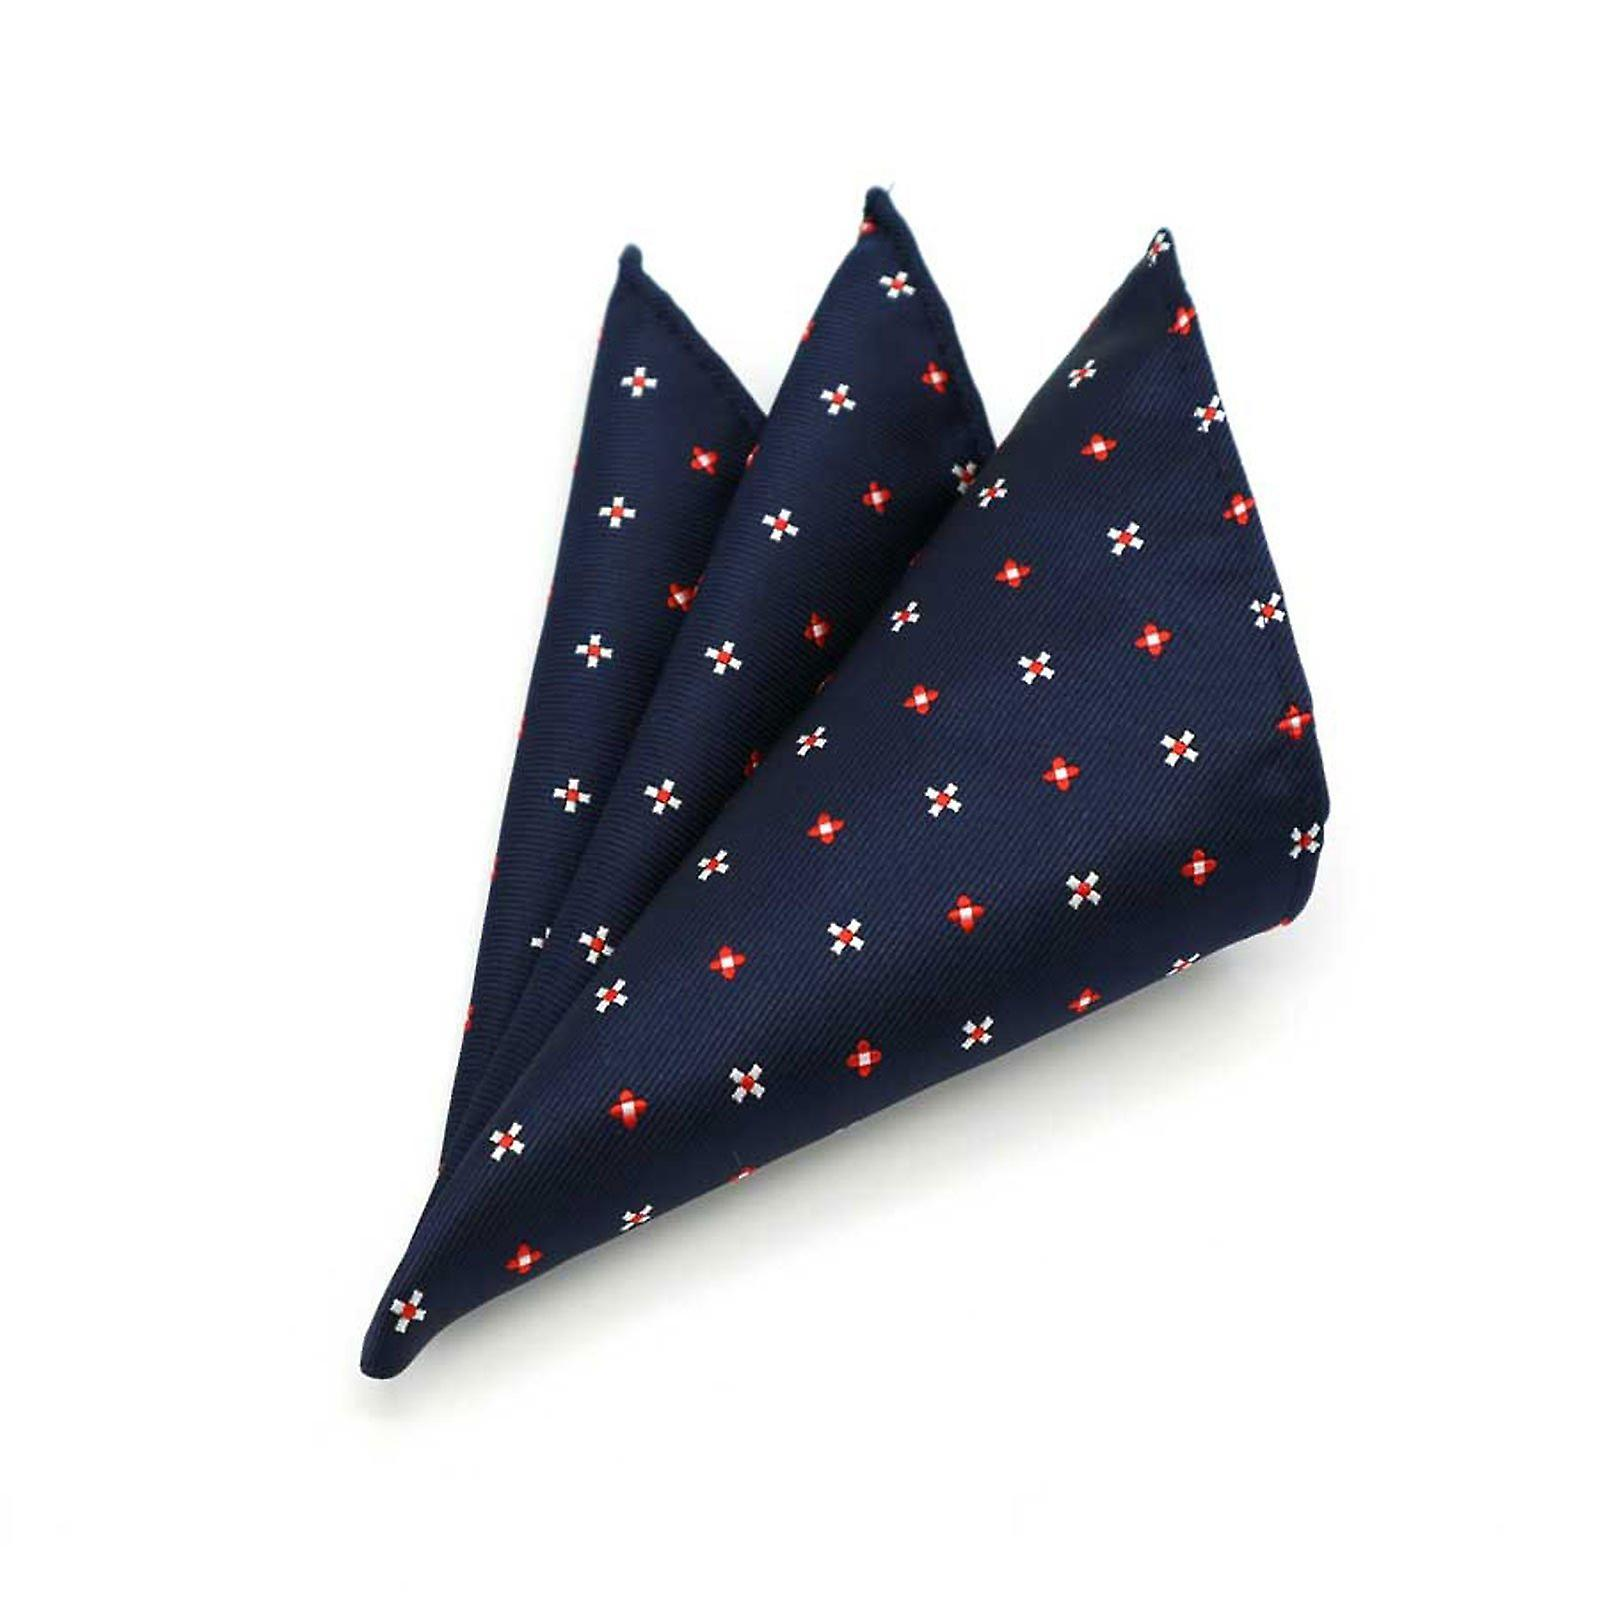 Navy blue & red floral ditsy pattern pocket square